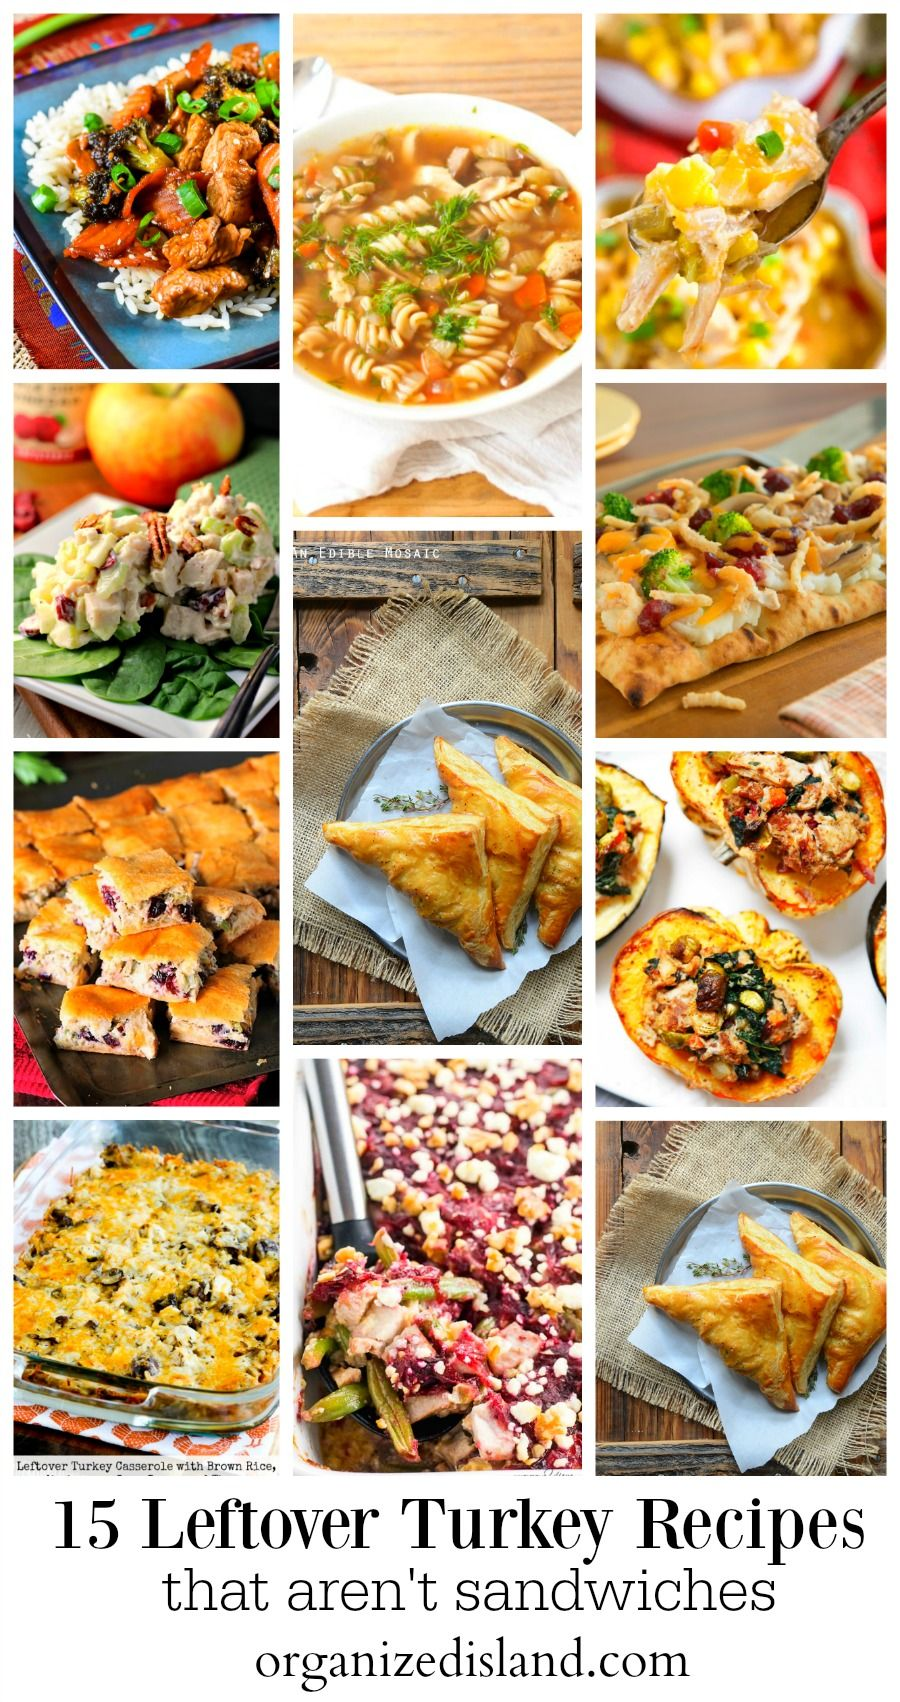 15 Ideas For Leftover Turkey 15 Ideas For Leftover Turkey new picture